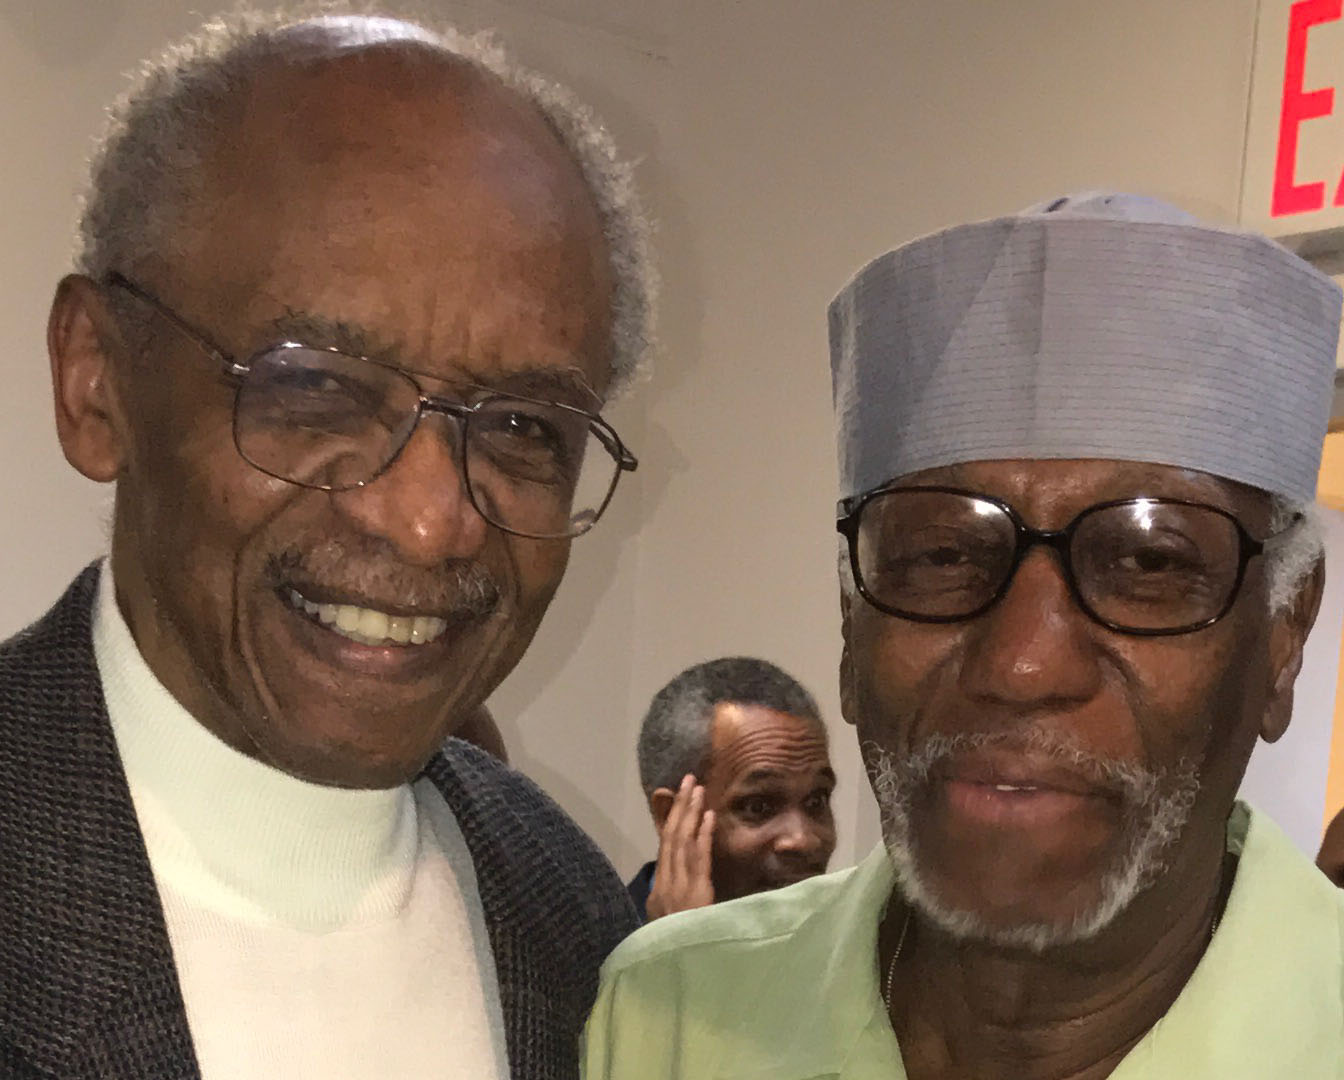 Sam Pinn—A gallant freedom fighter and Brooklyn legend passes at 82